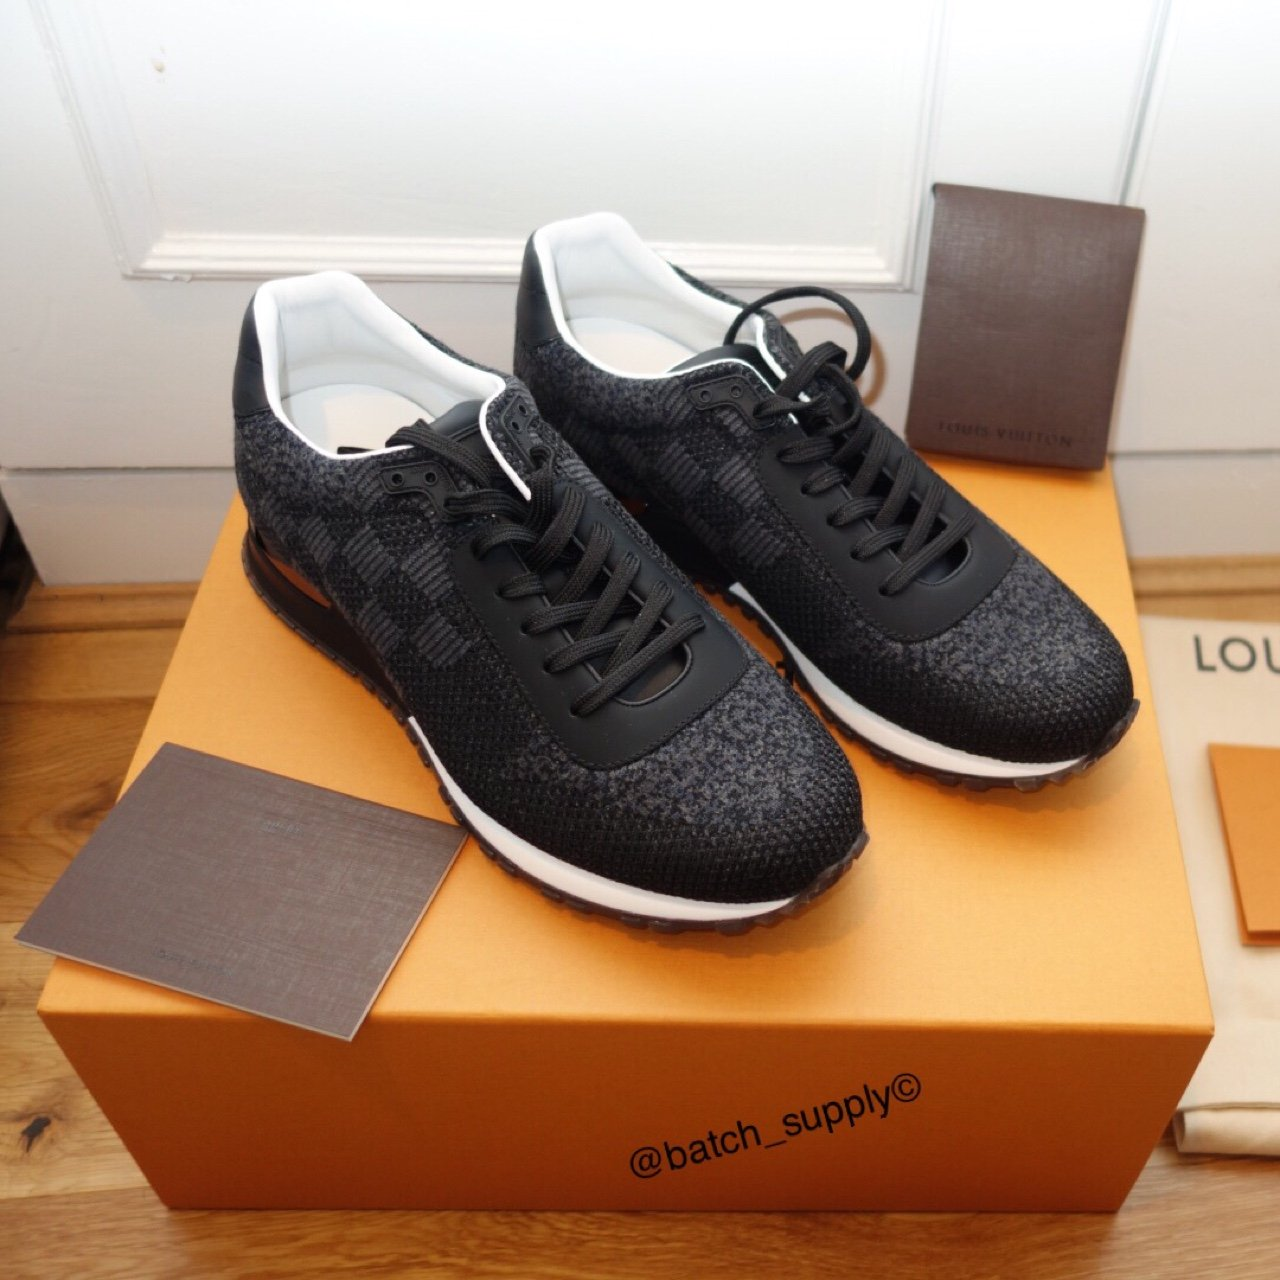 723e27669aec Brand new and boxed Louis Vuitton Run Away Trainers. Brought - Depop